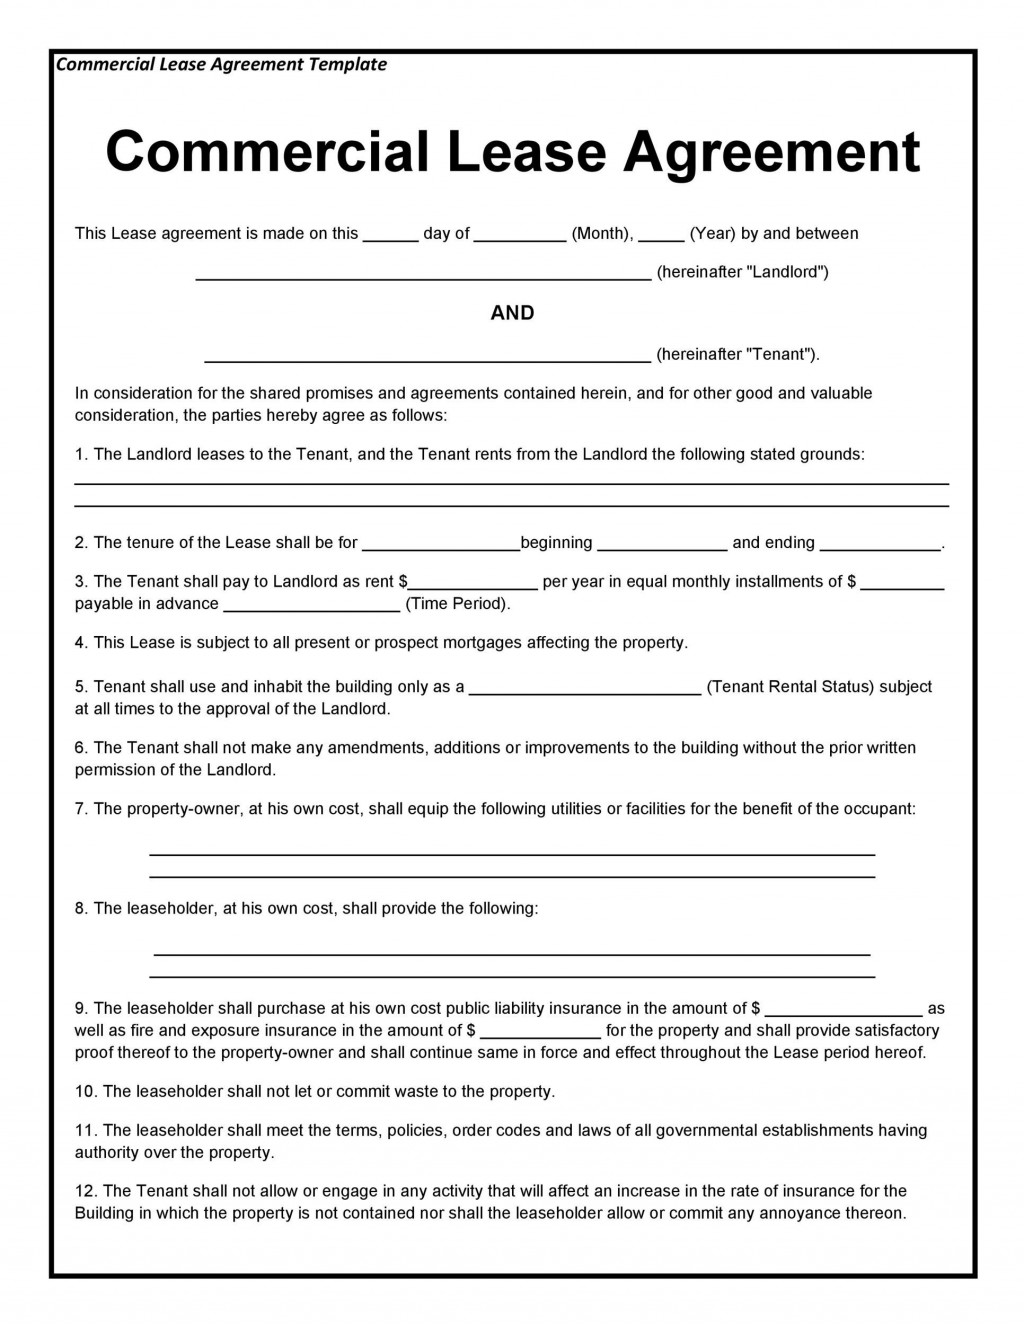 002 Fascinating Free Commercial Lease Agreement Template Australia Picture  Queensland DownloadLarge